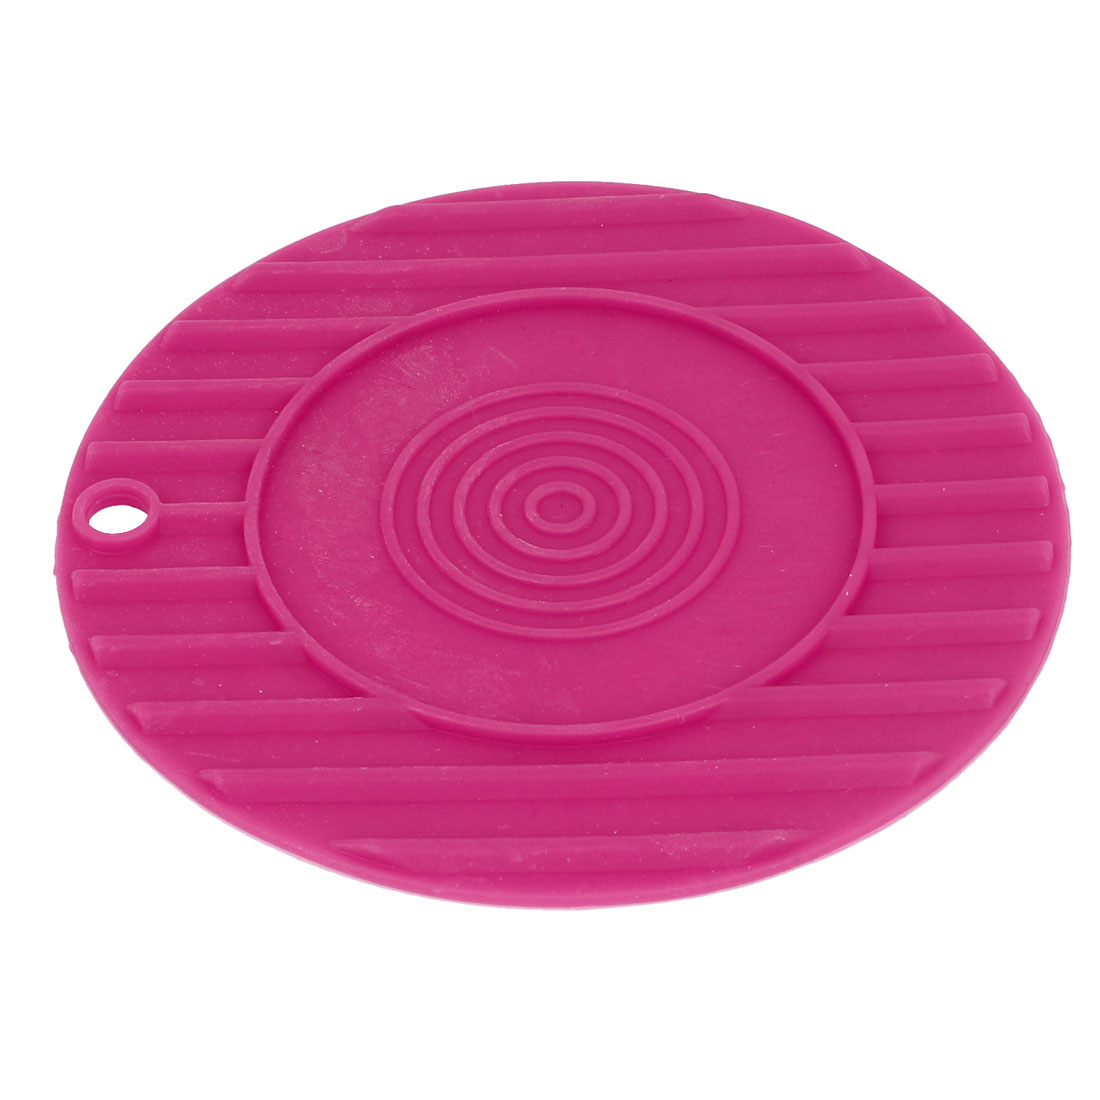 Fuchsia Silicone Cup Bowl Drinks Holder Pad Mat Coaster Tableware Placemat